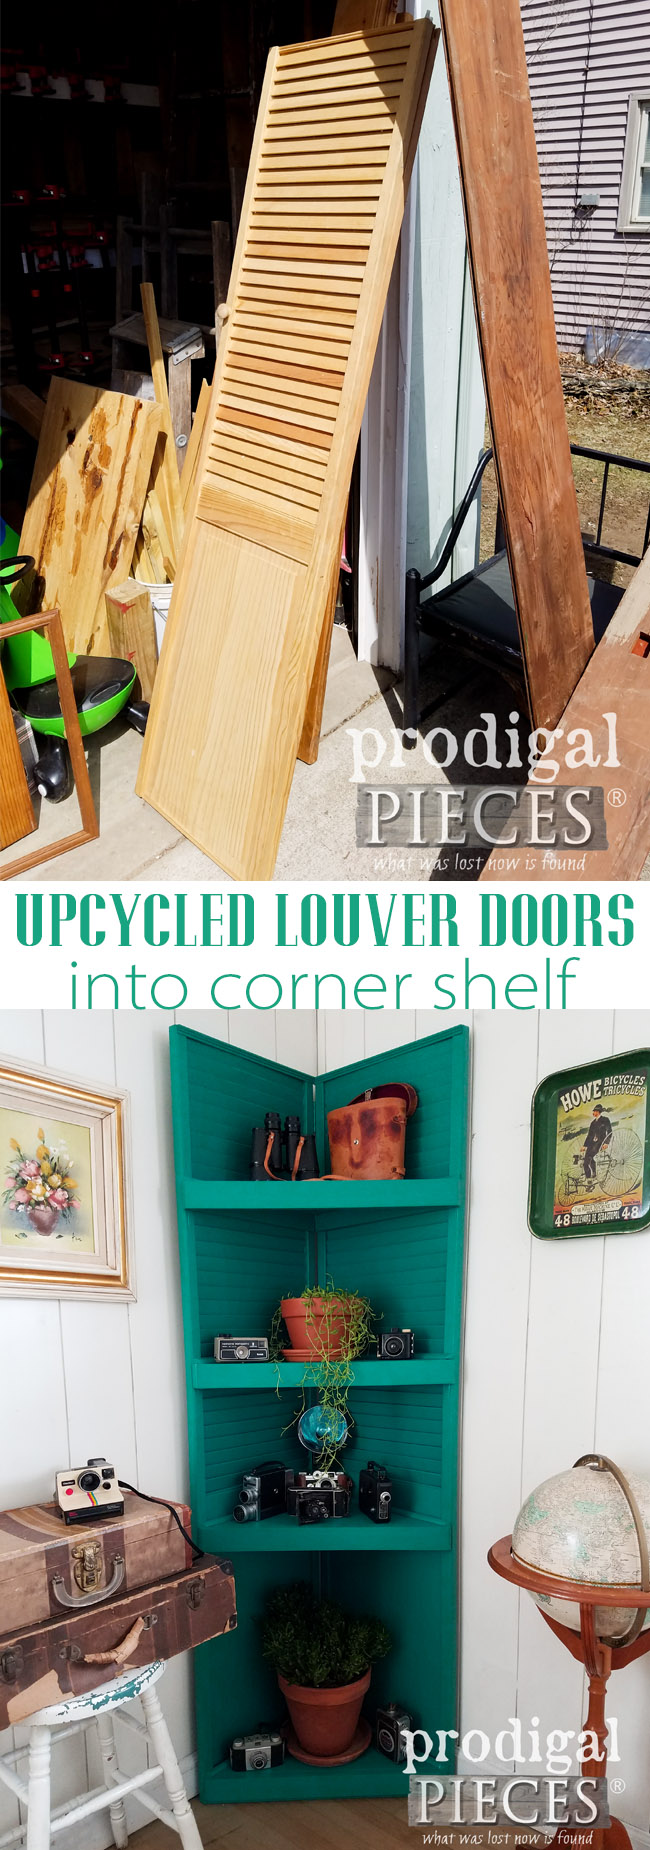 Grab those old louver doors and get your build on! You can create this upcycled louver door corner shelf with a few basic supplies and the right tools. Come get the tutorial by Larissa of Prodigal Pieces at prodigalpieces.com